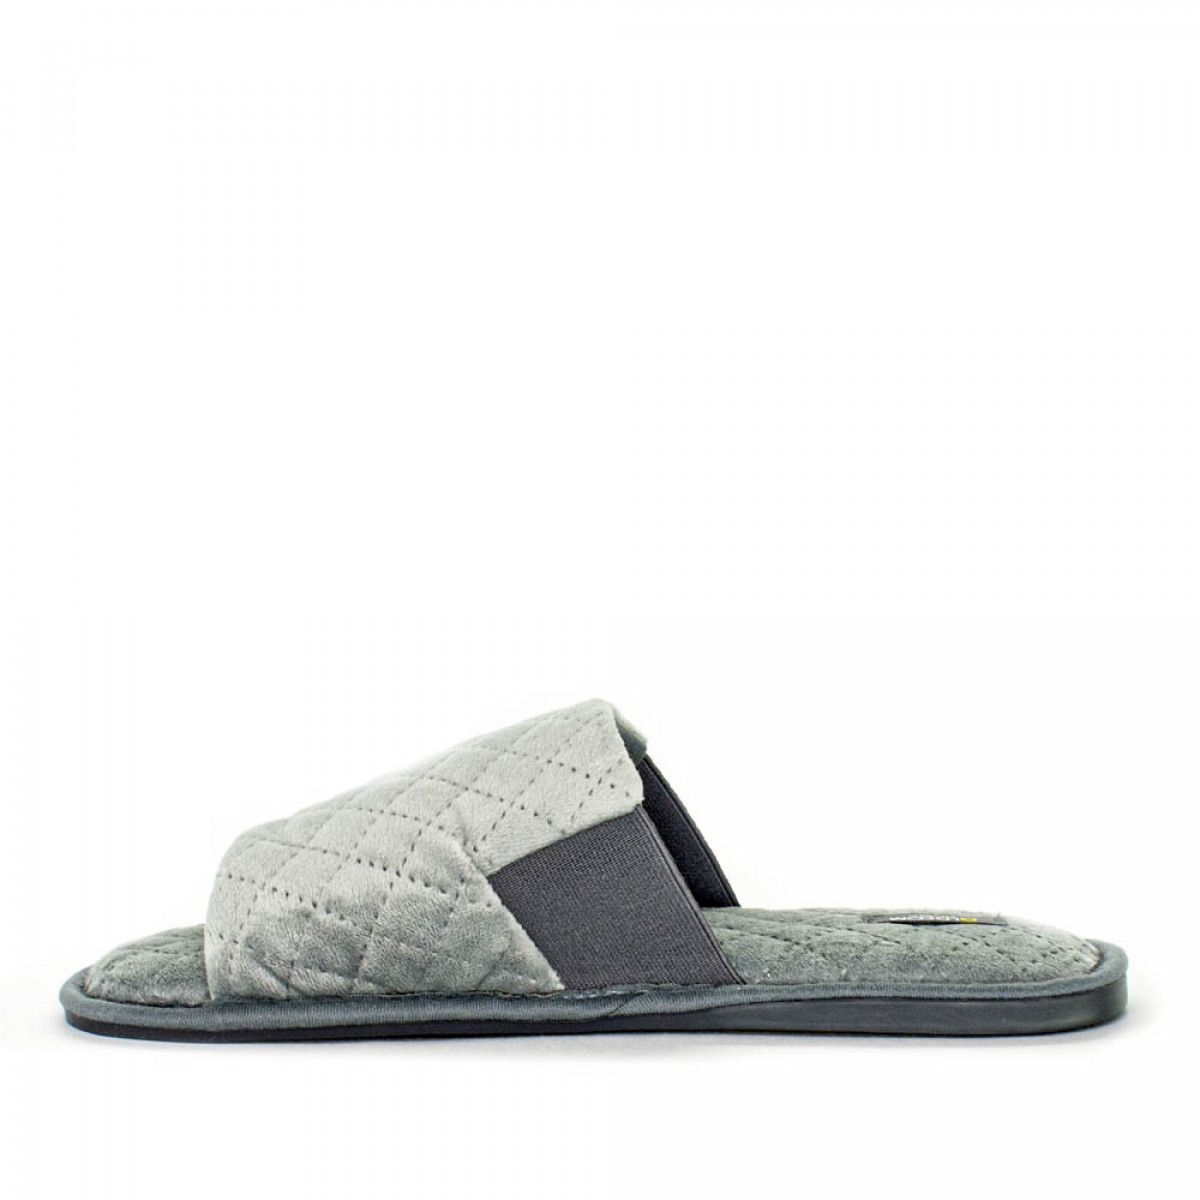 Home slippers TOMAS, Gray